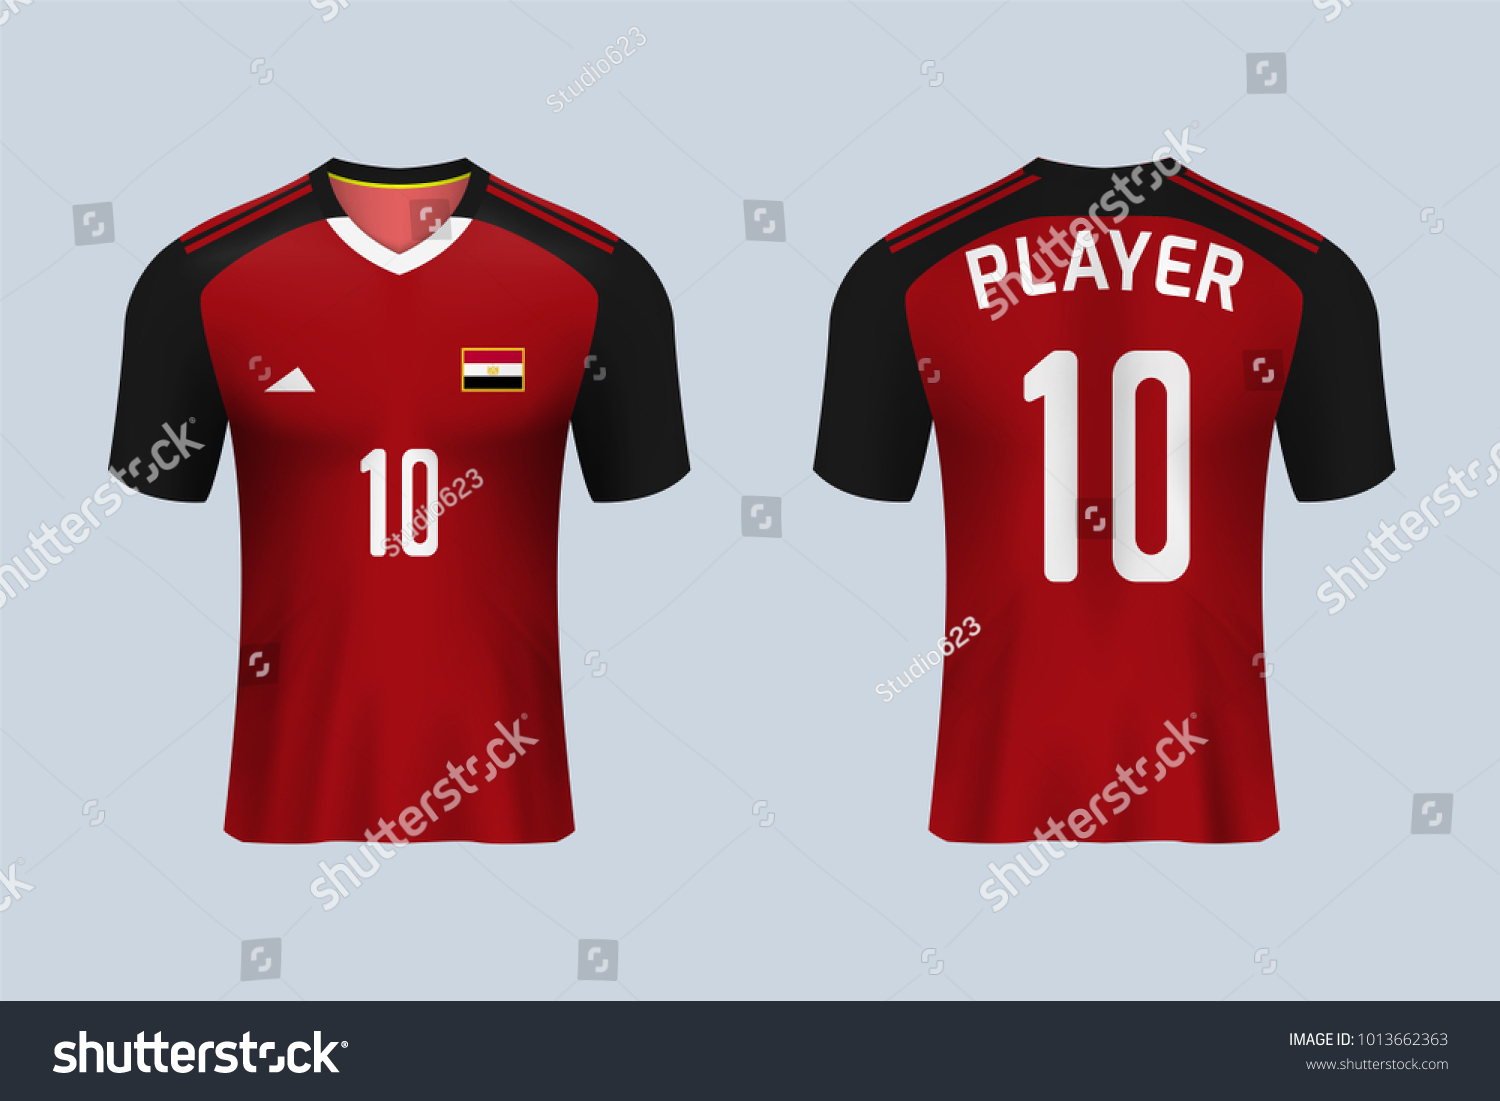 3D realistic of front and back view of soccer jersey shirt on shop  backdrop. Concept ce25052ad09bf